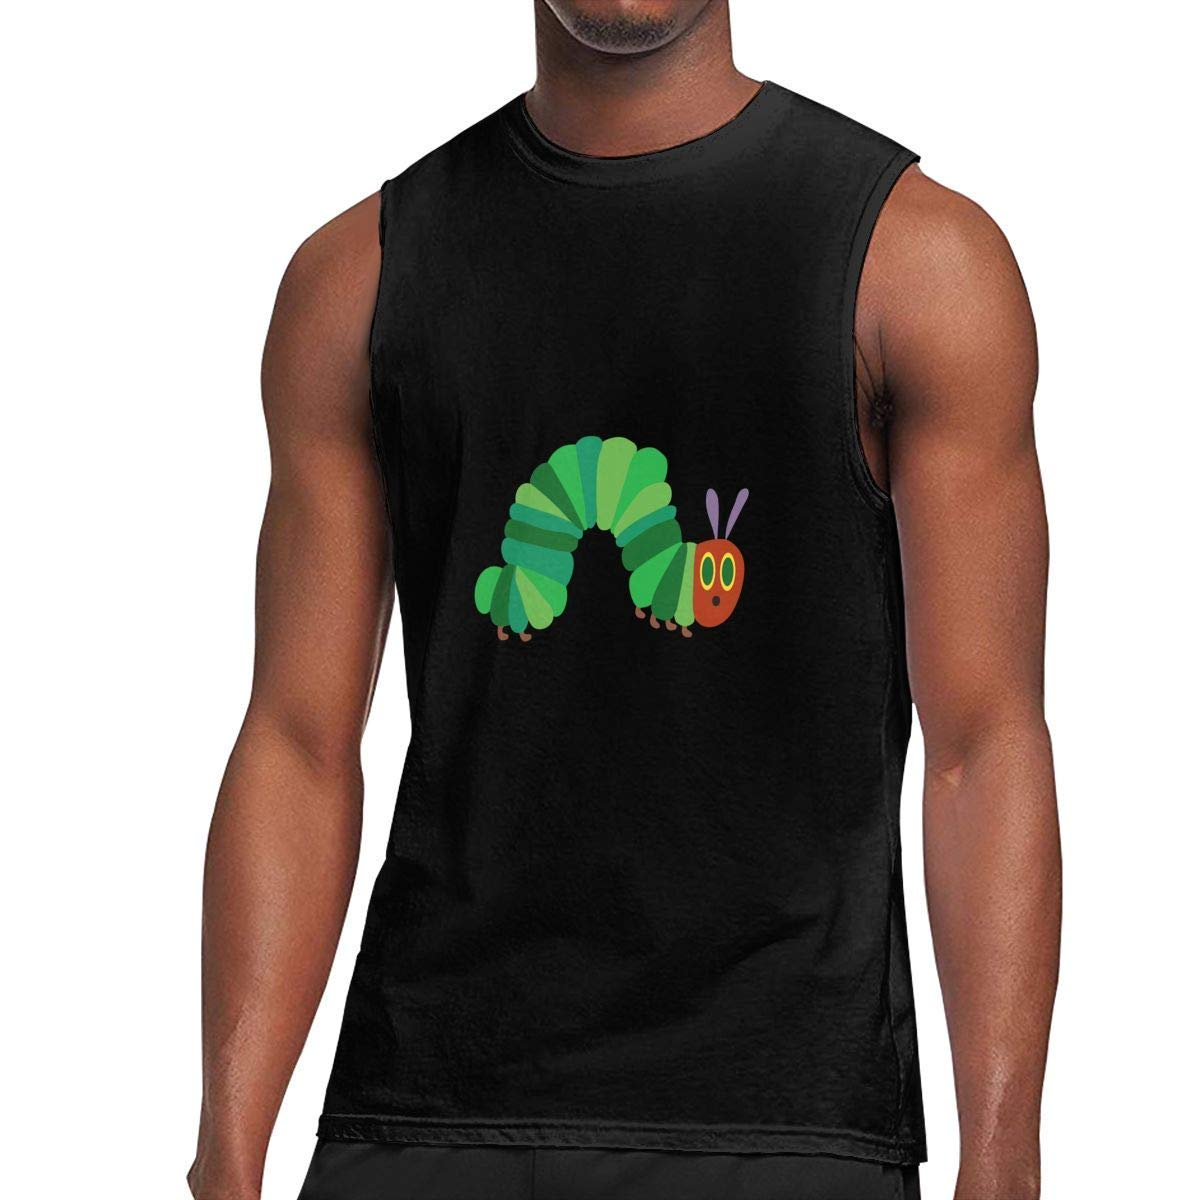 Sleeveless T Shirt The Very Hungry Caterpillar Workout Tank Tops Gym Bodybuilding Tshirts Black